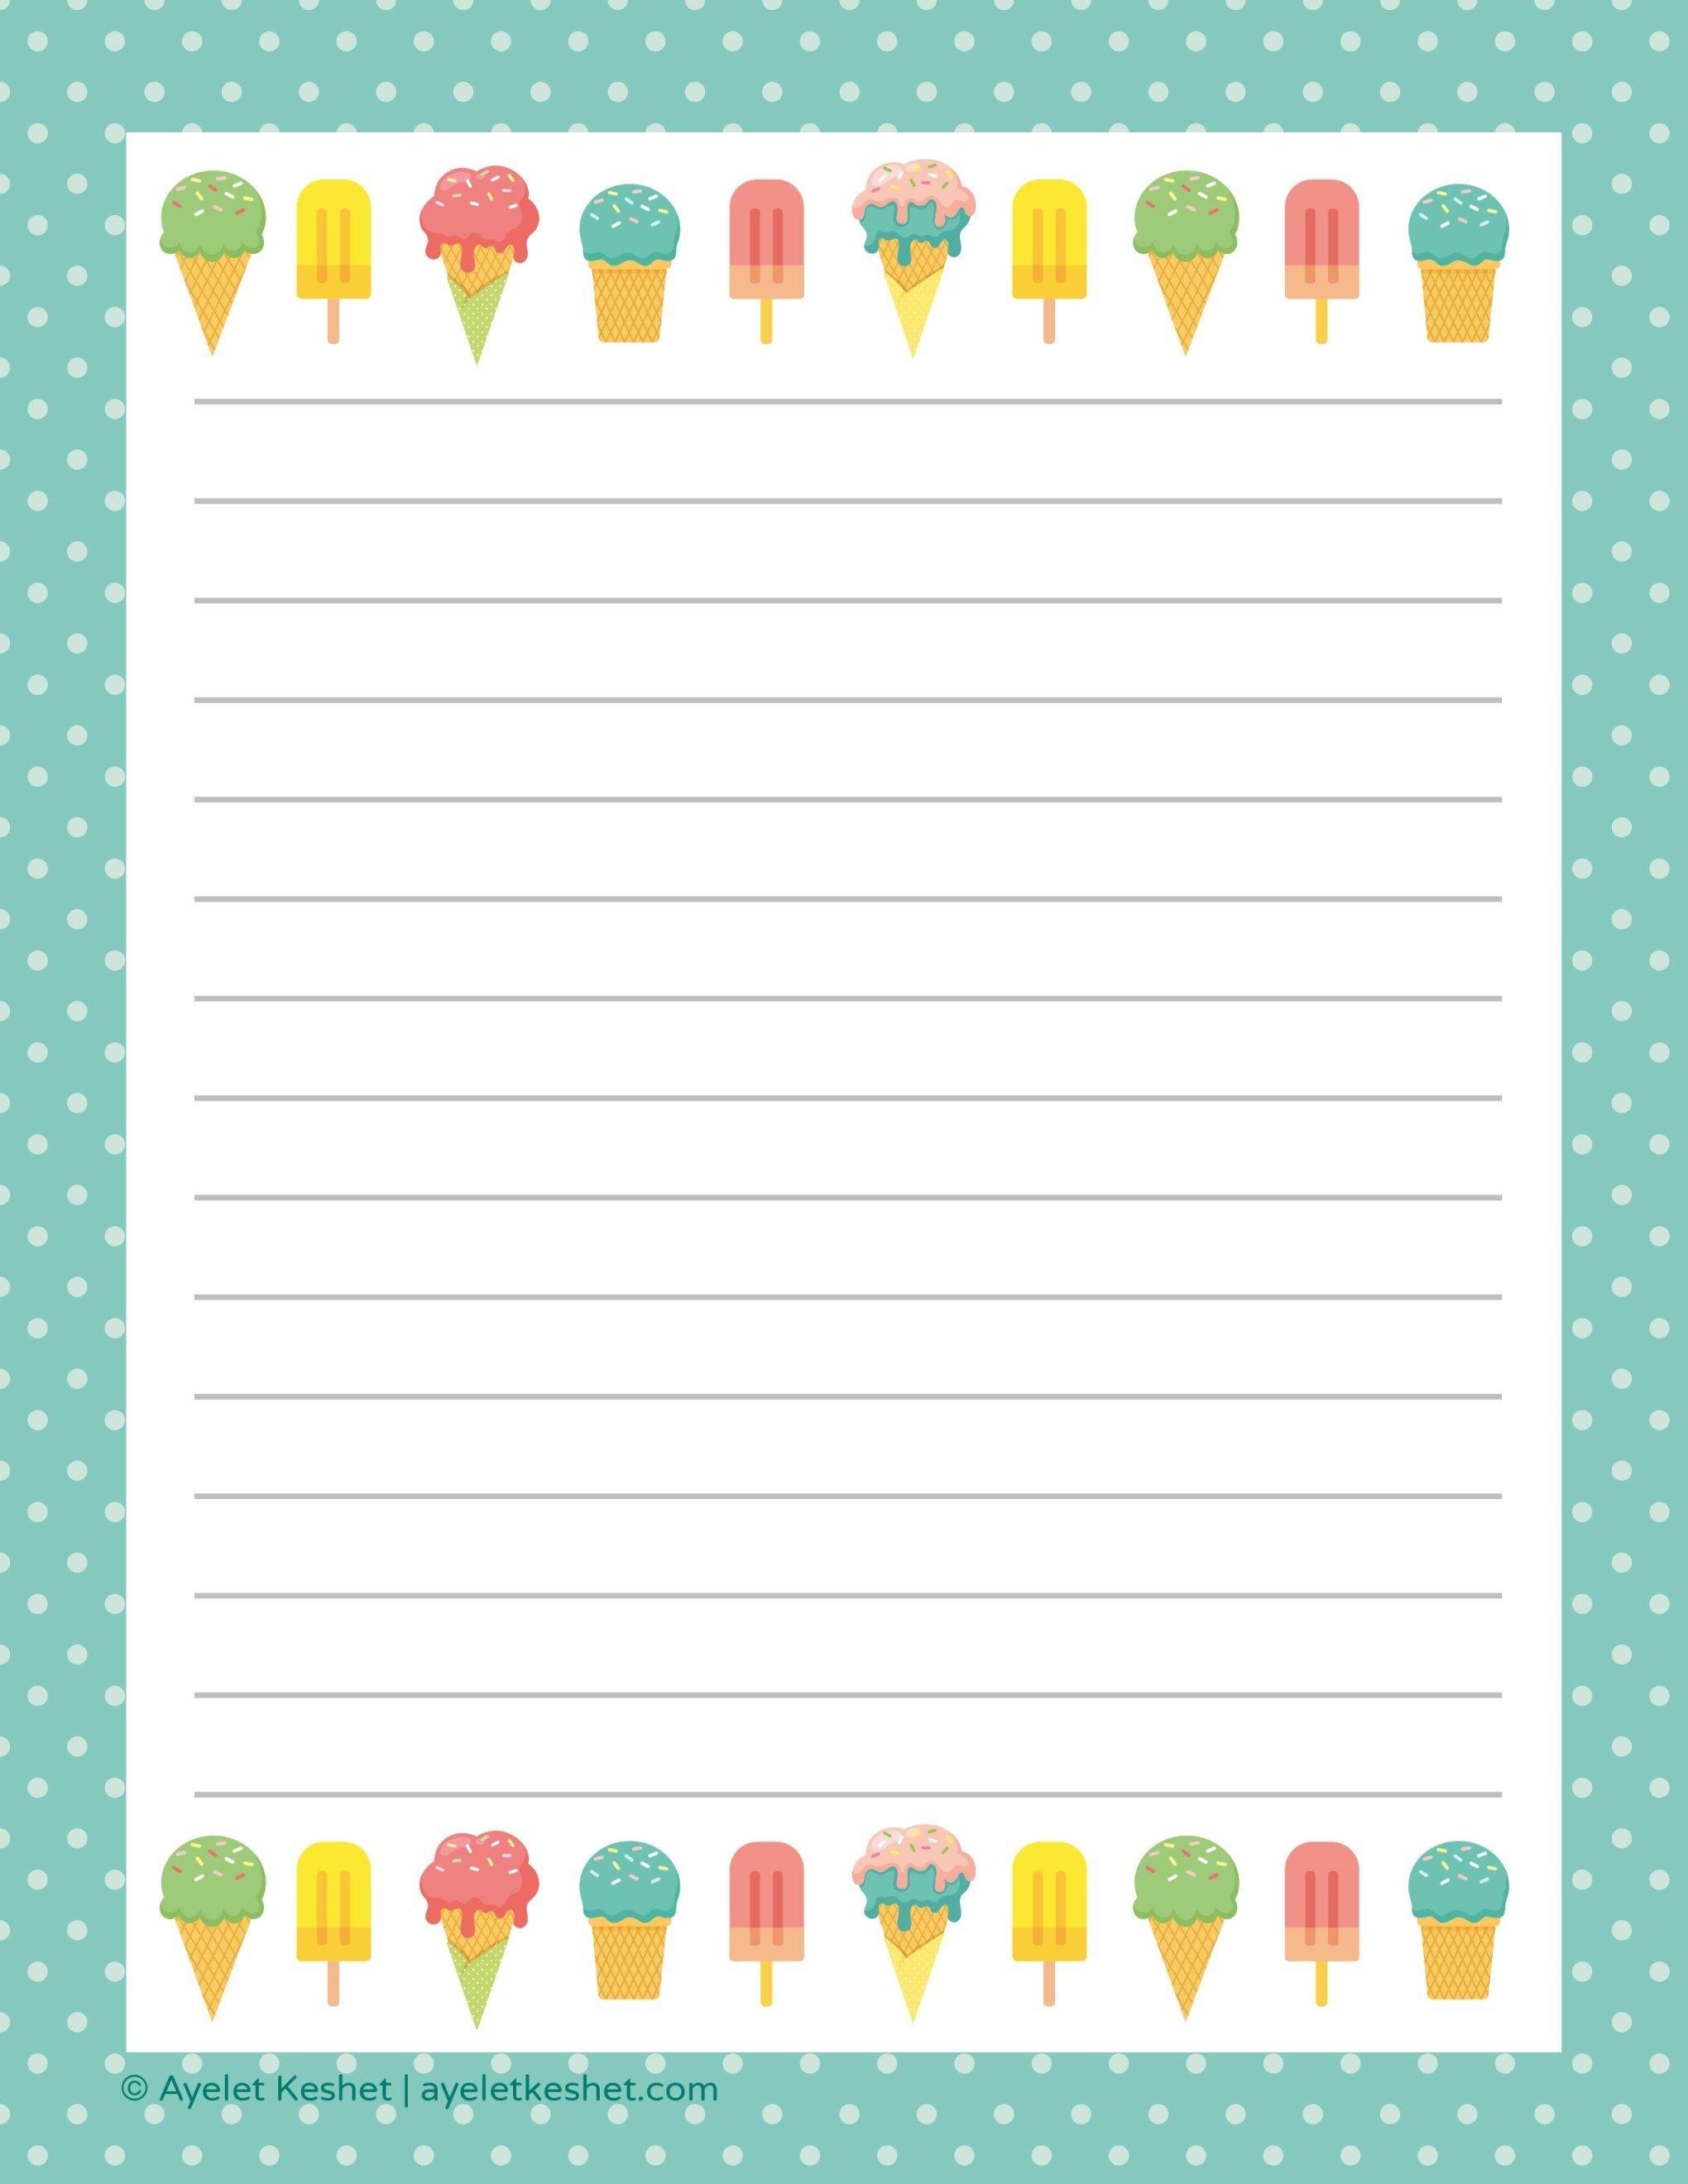 Free Printable Letter Paper | Printables To Go | Free Printable - Free Printable Writing Paper